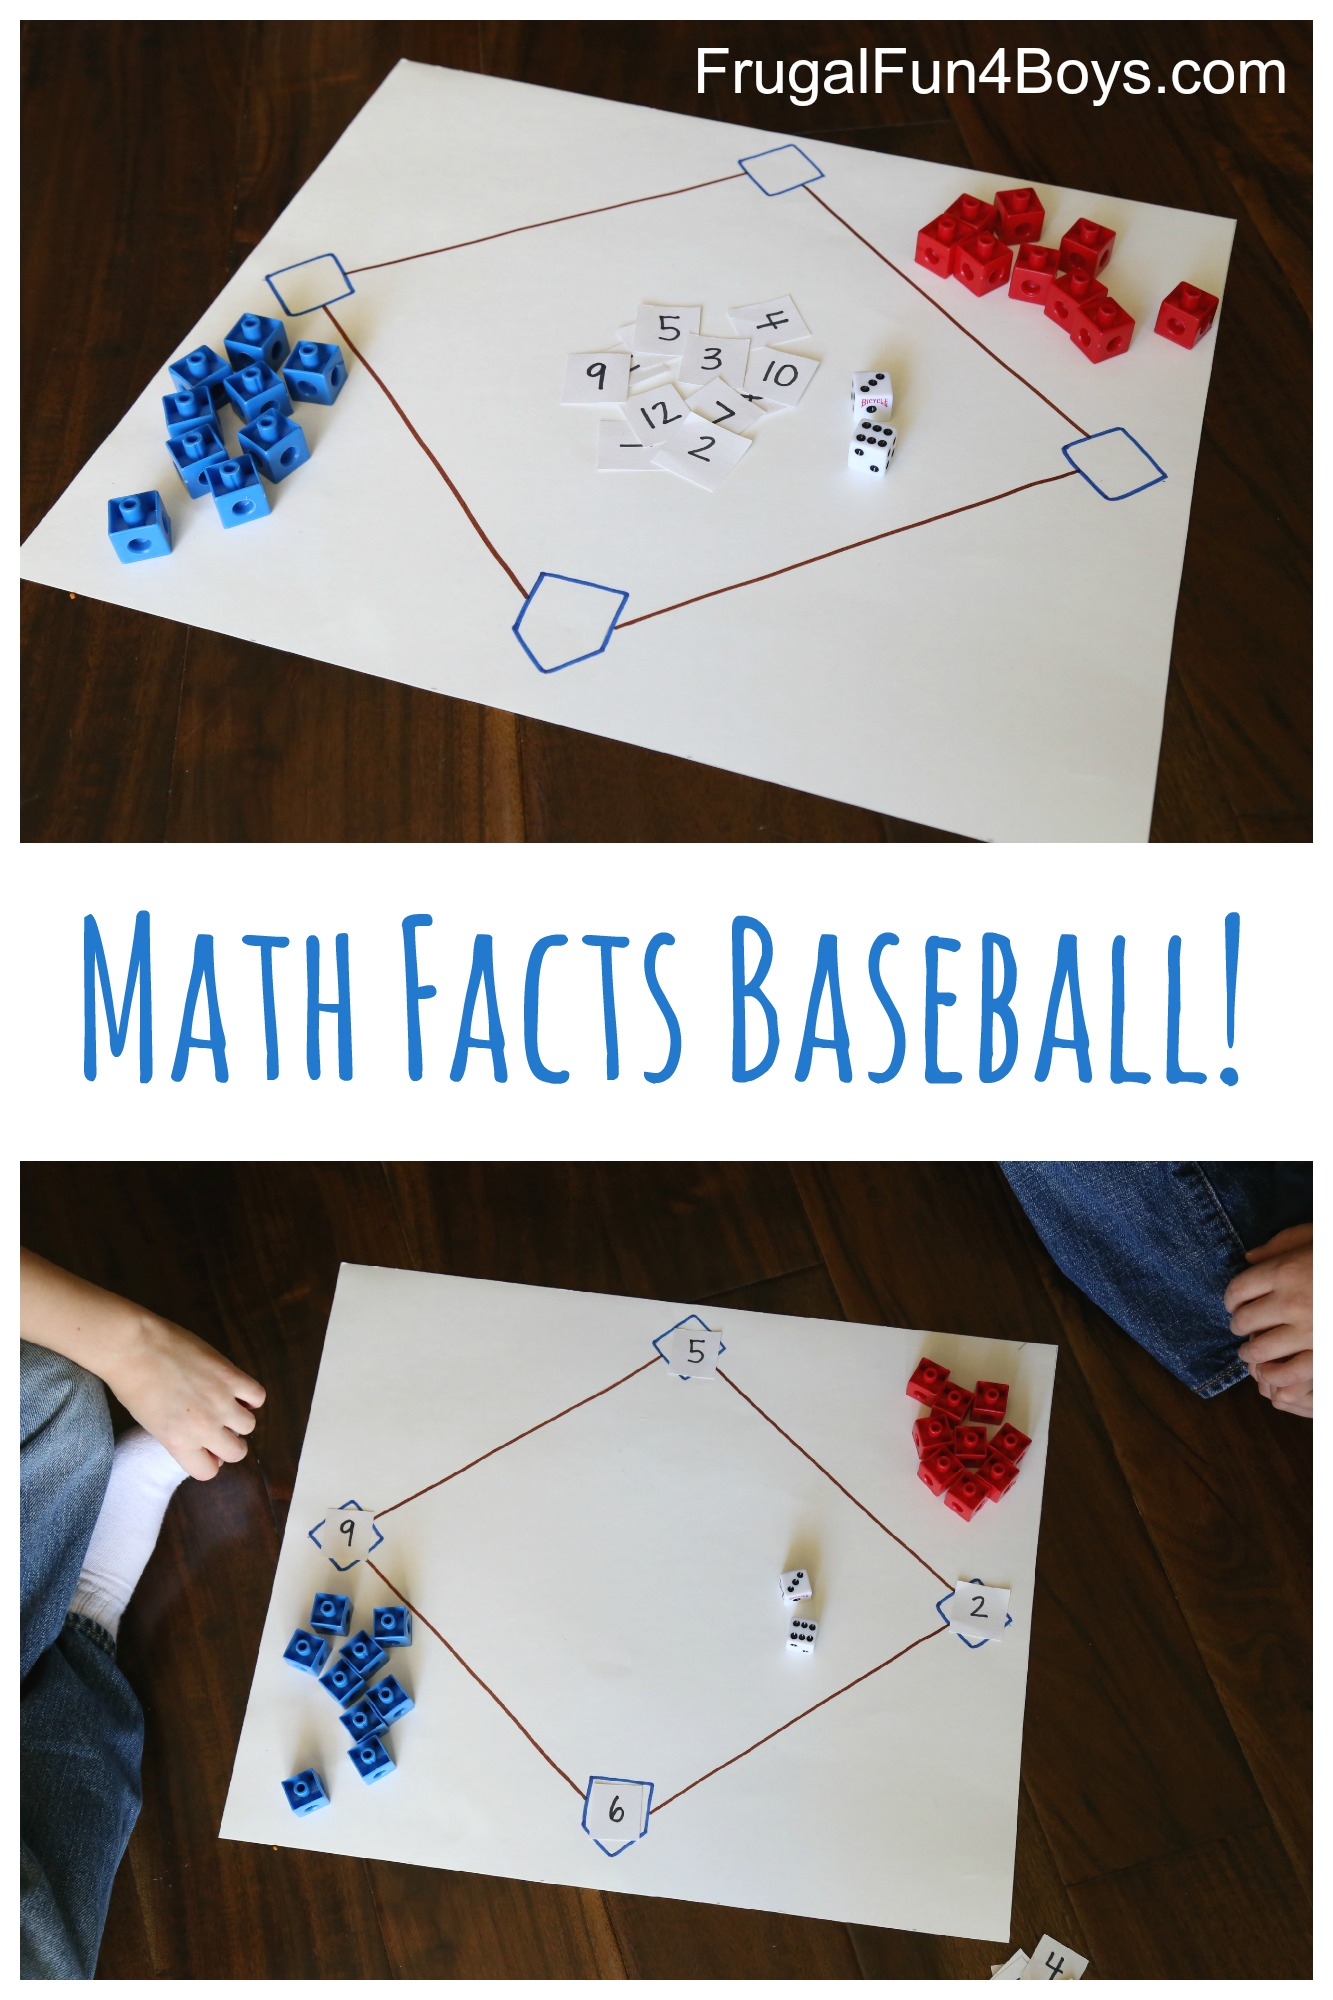 Math Facts Baseball An Awesome Way To Practice Math Frugal Fun